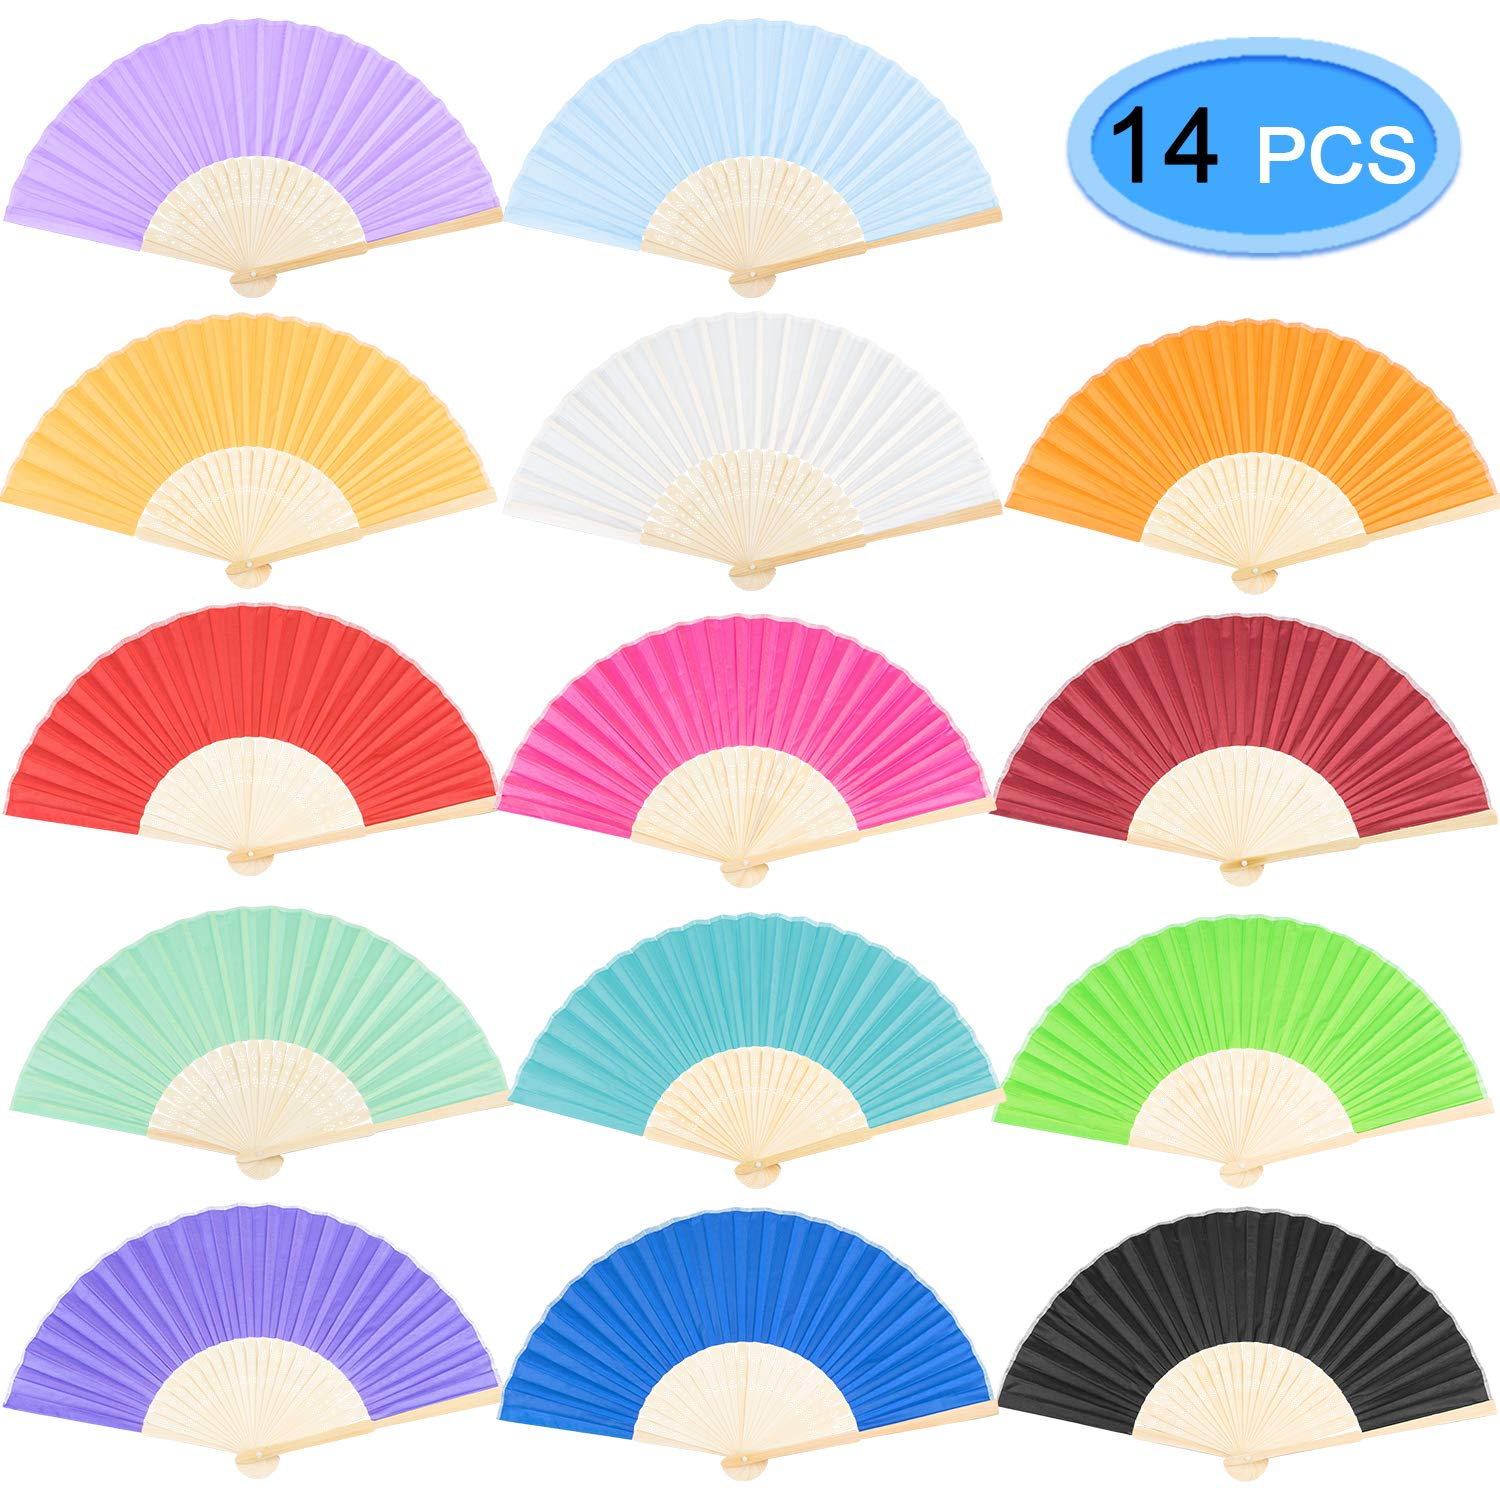 Pure Folding Dance Wedding Party Lace Silk Folding Hand Held Solid Color Fan 9